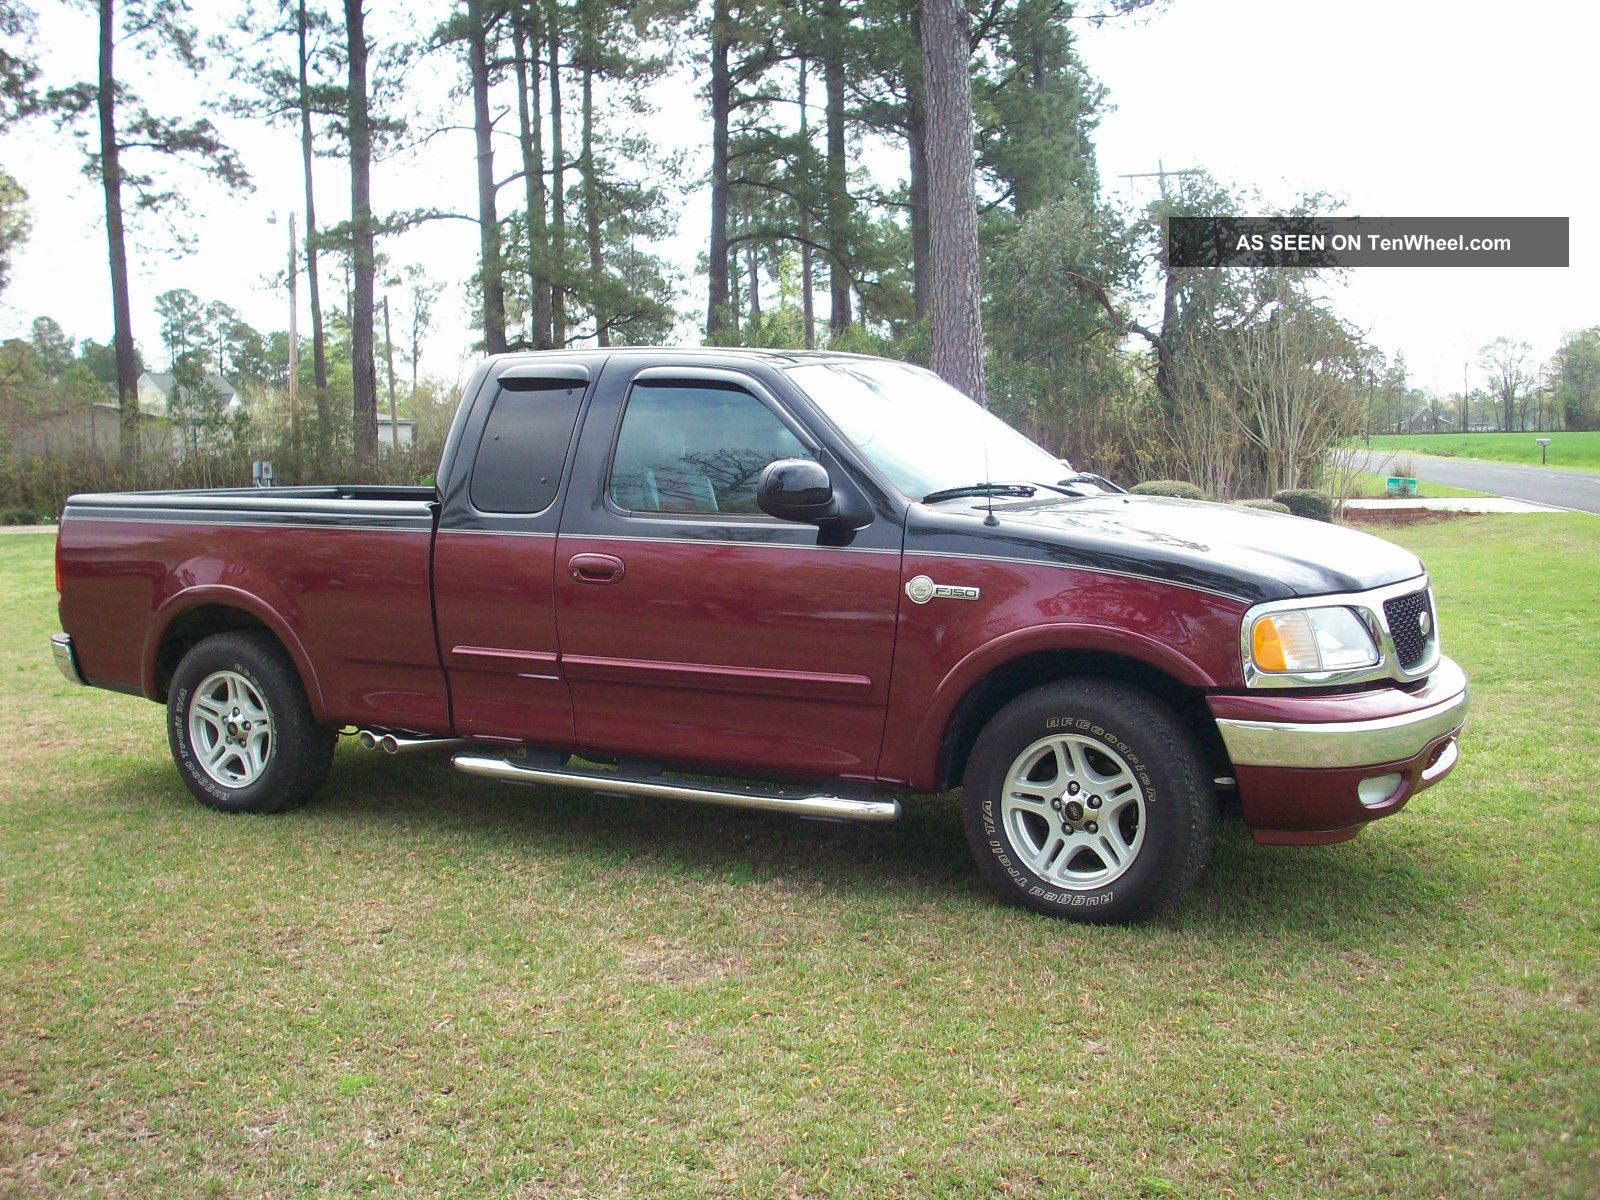 2003 ford f 150 hertiage classic extended cab both doors open luxury package. Black Bedroom Furniture Sets. Home Design Ideas